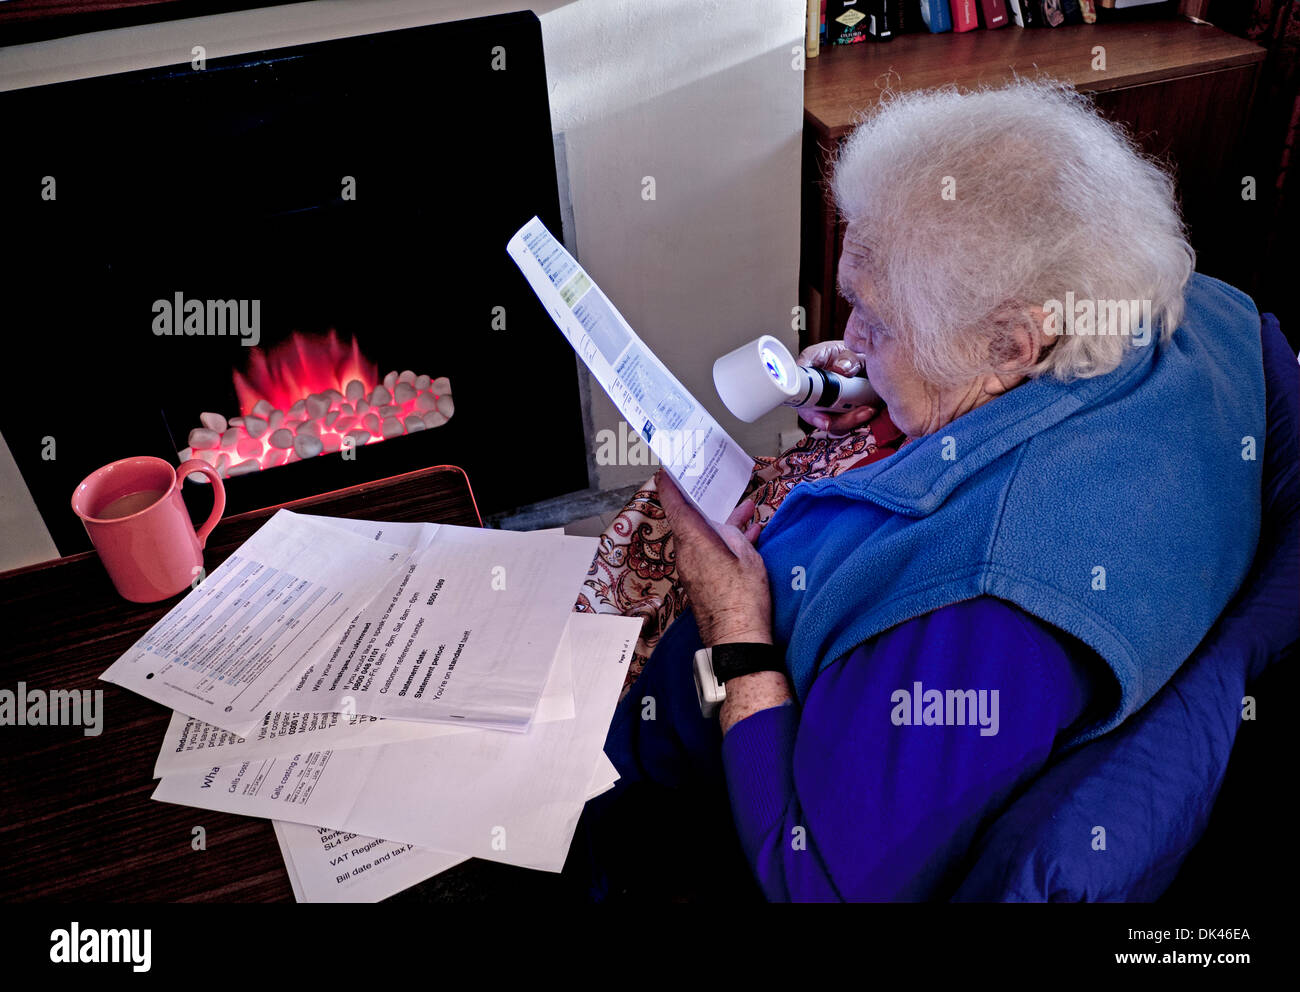 WINTER HEATING BILLS Elderly senior independent 99 year old lady at home in front of fire using a magnifier to read her winter household energy bills - Stock Image